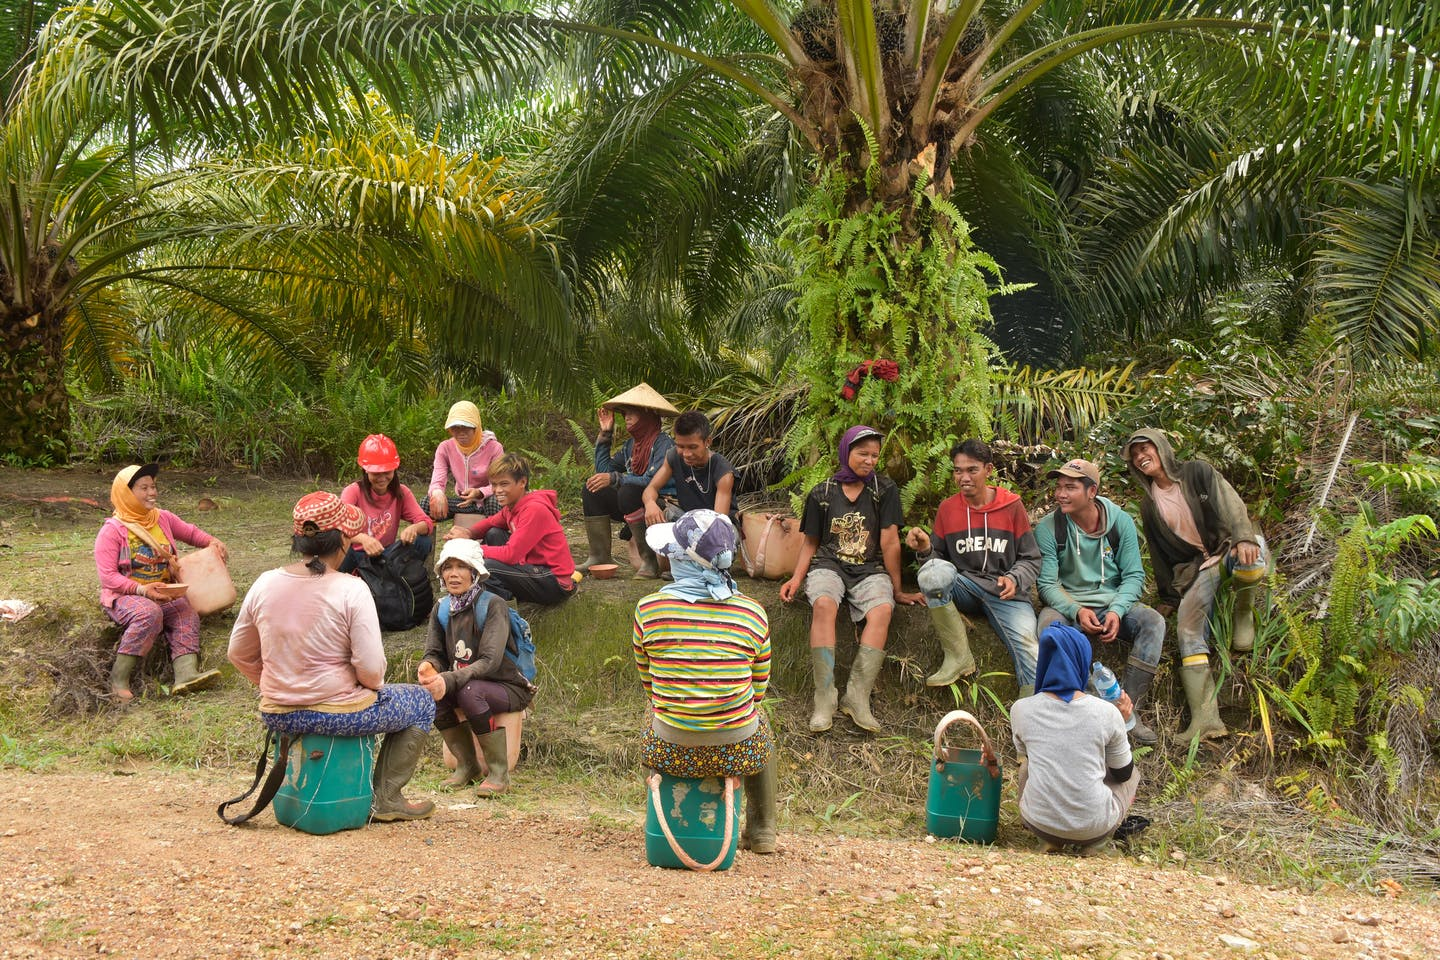 oil palm plantation workers take a rest from work